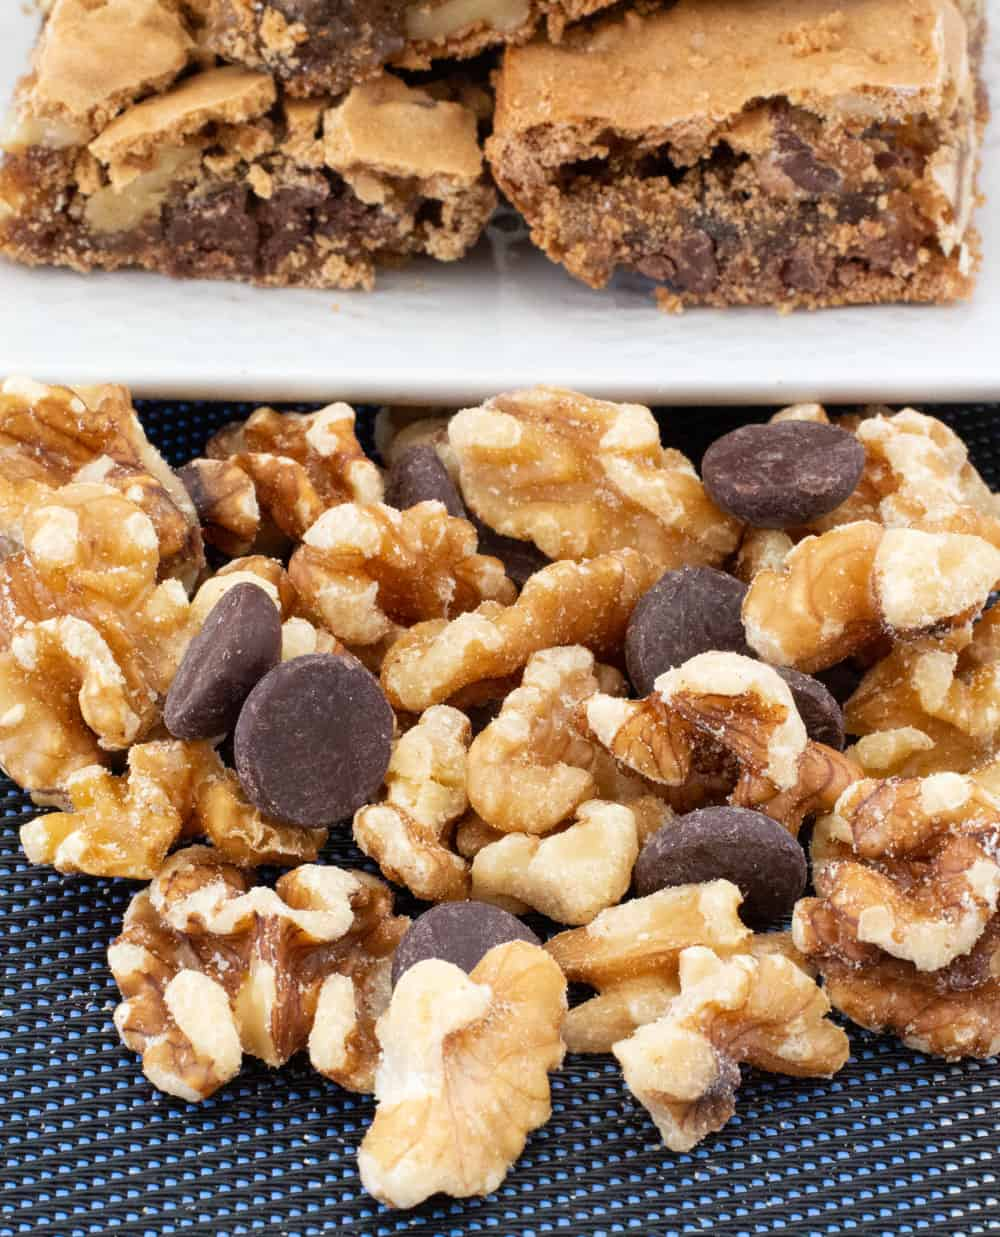 walnuts and chips in front of walnut chocolate chip blondies